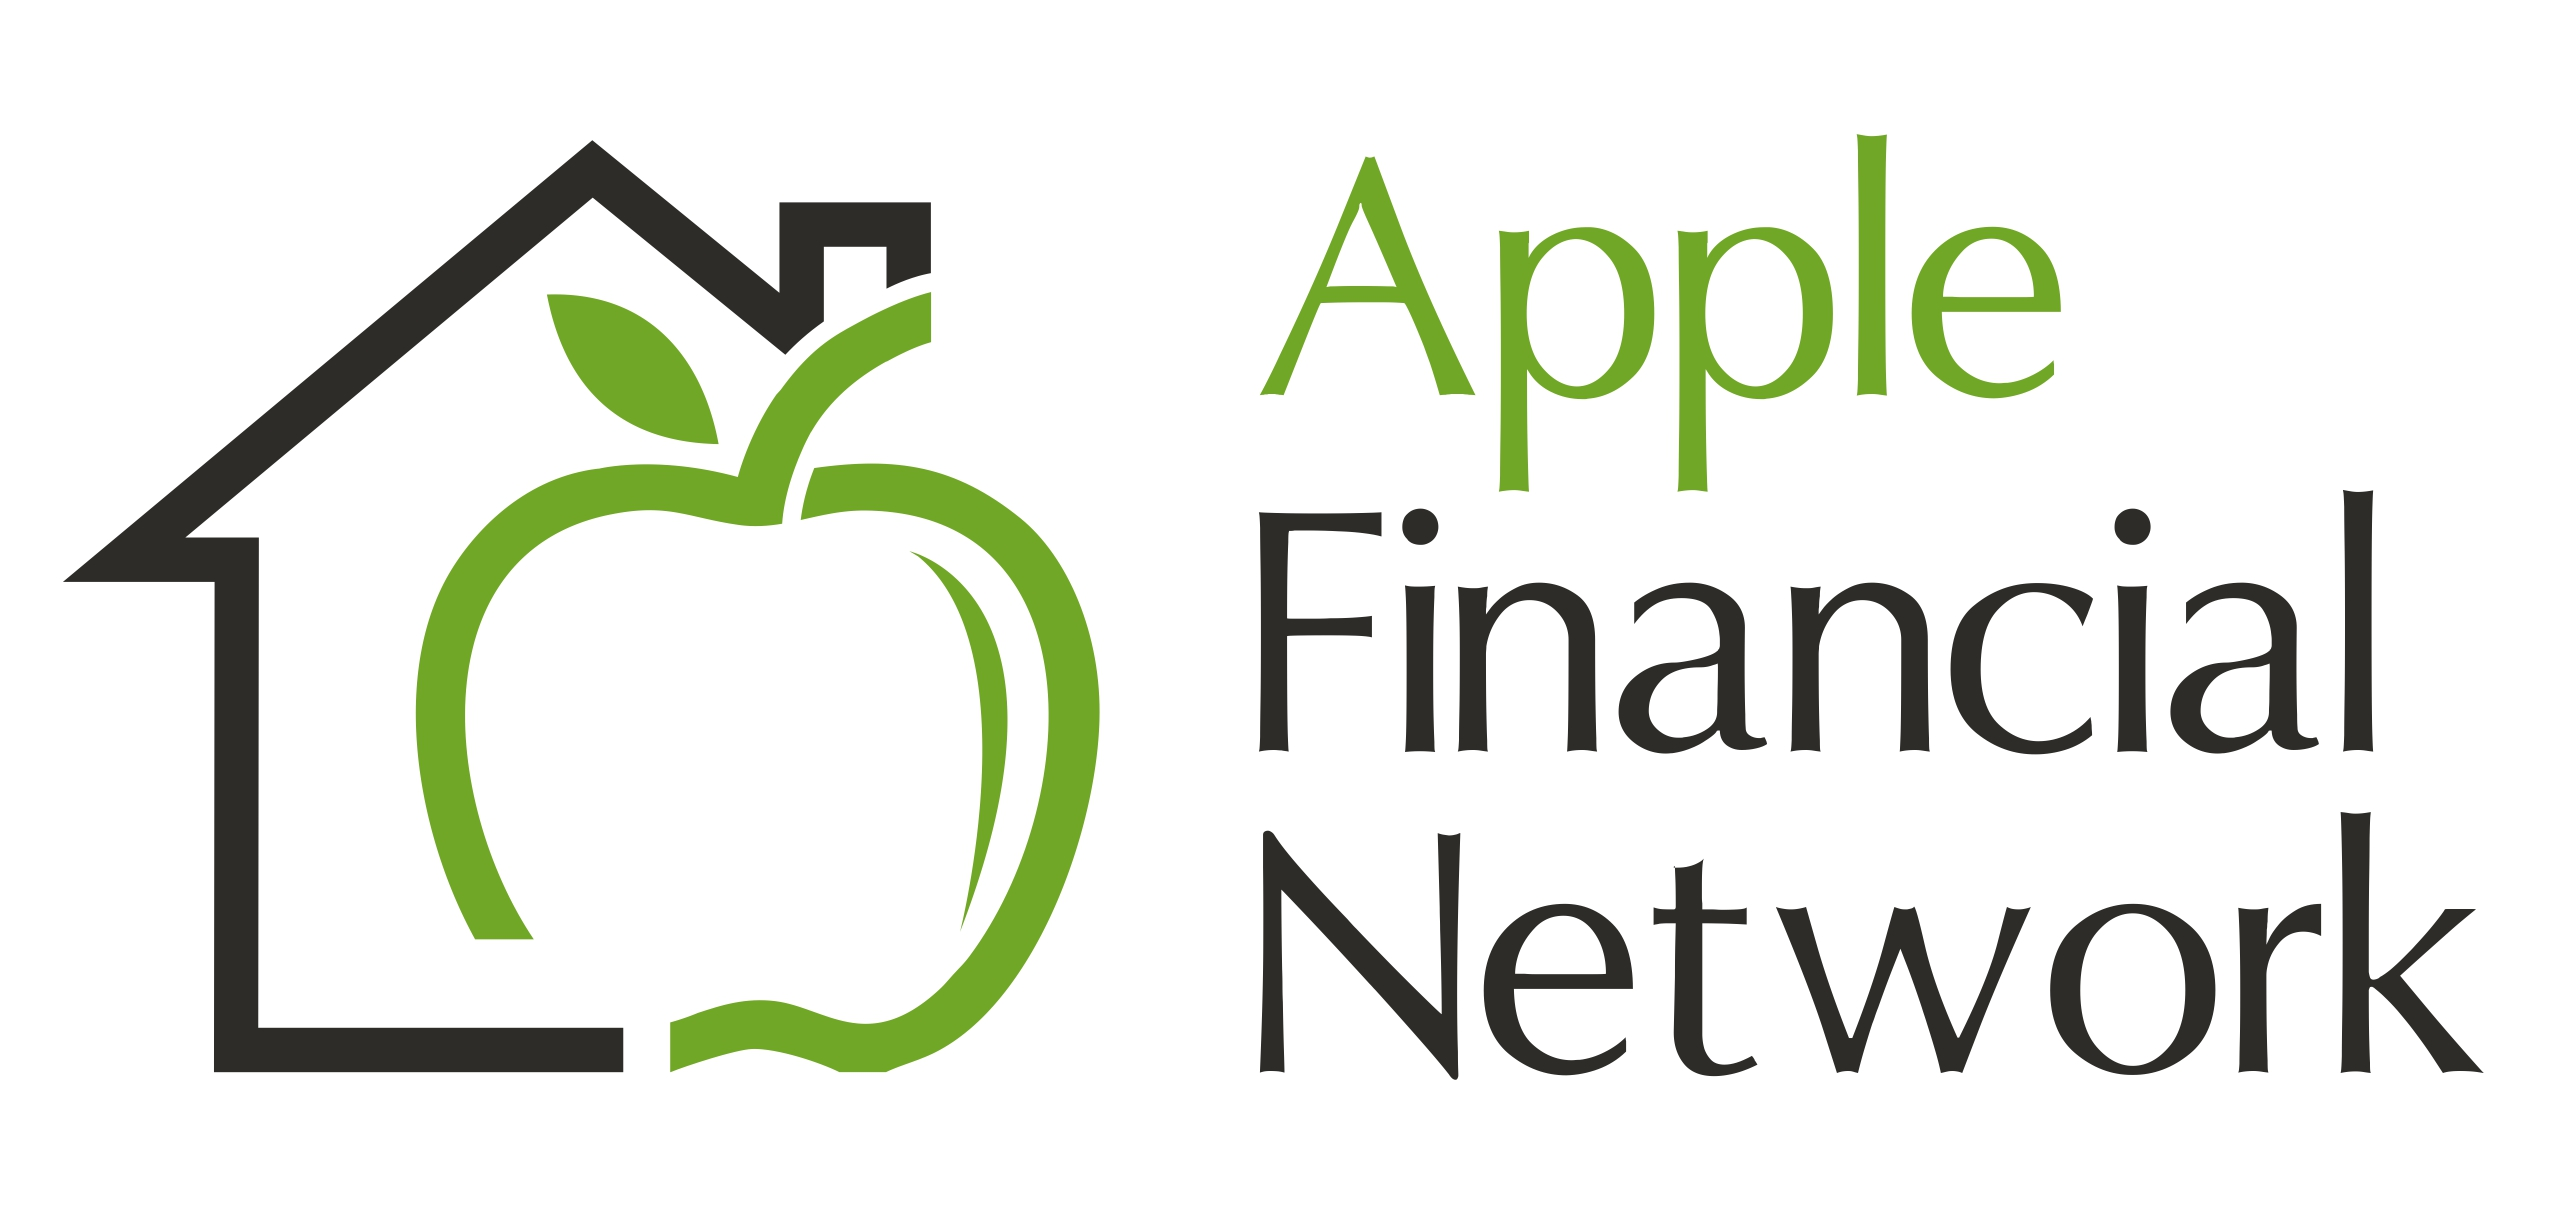 Apple Financial Network | Mortgage Brokers at 3200 E Guasti Rd. - Ontario CA - Reviews - Photos - Phone Number